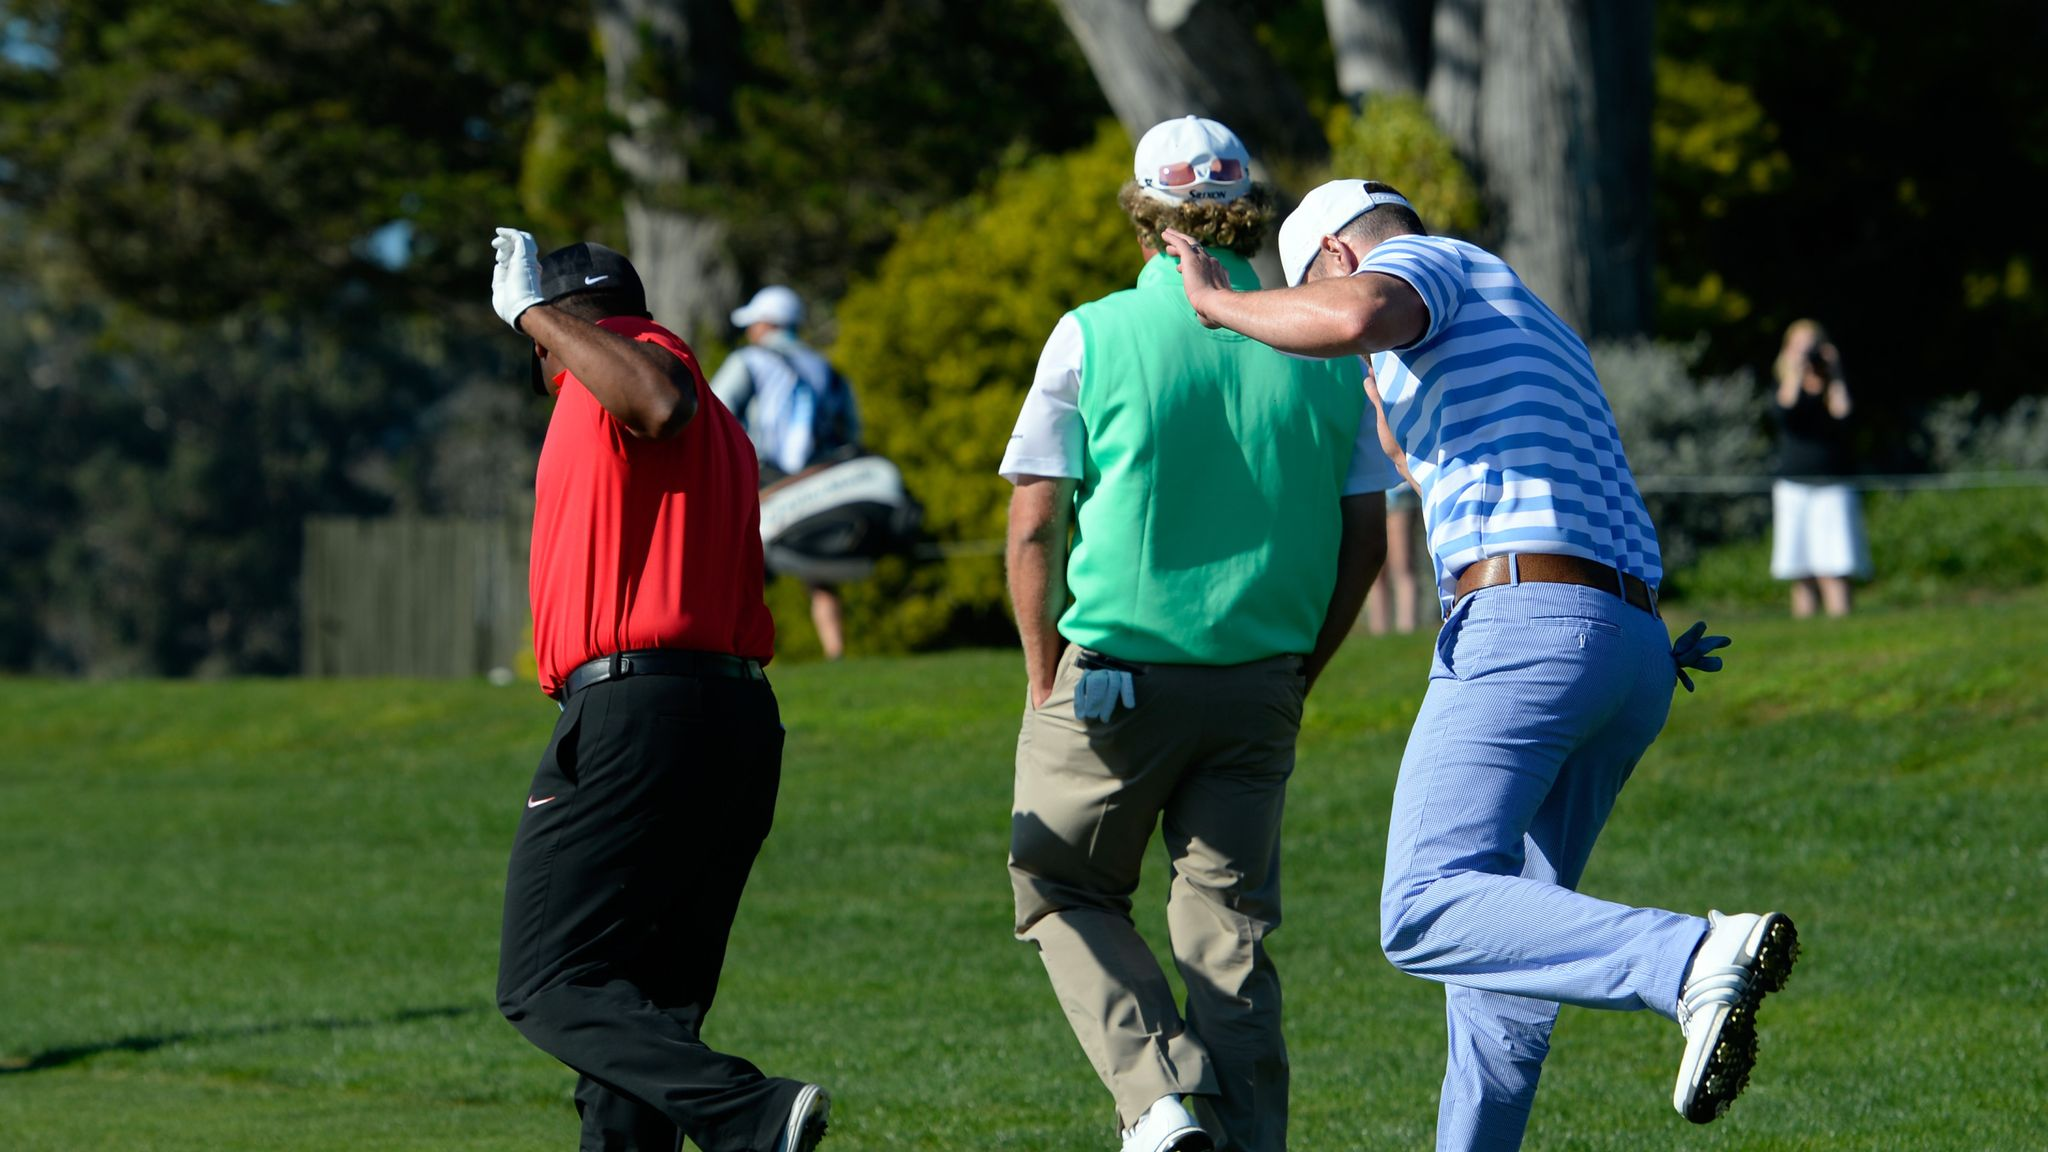 Justin Timberlake's near ace from 2017 AT&T Pebble Beach Pro